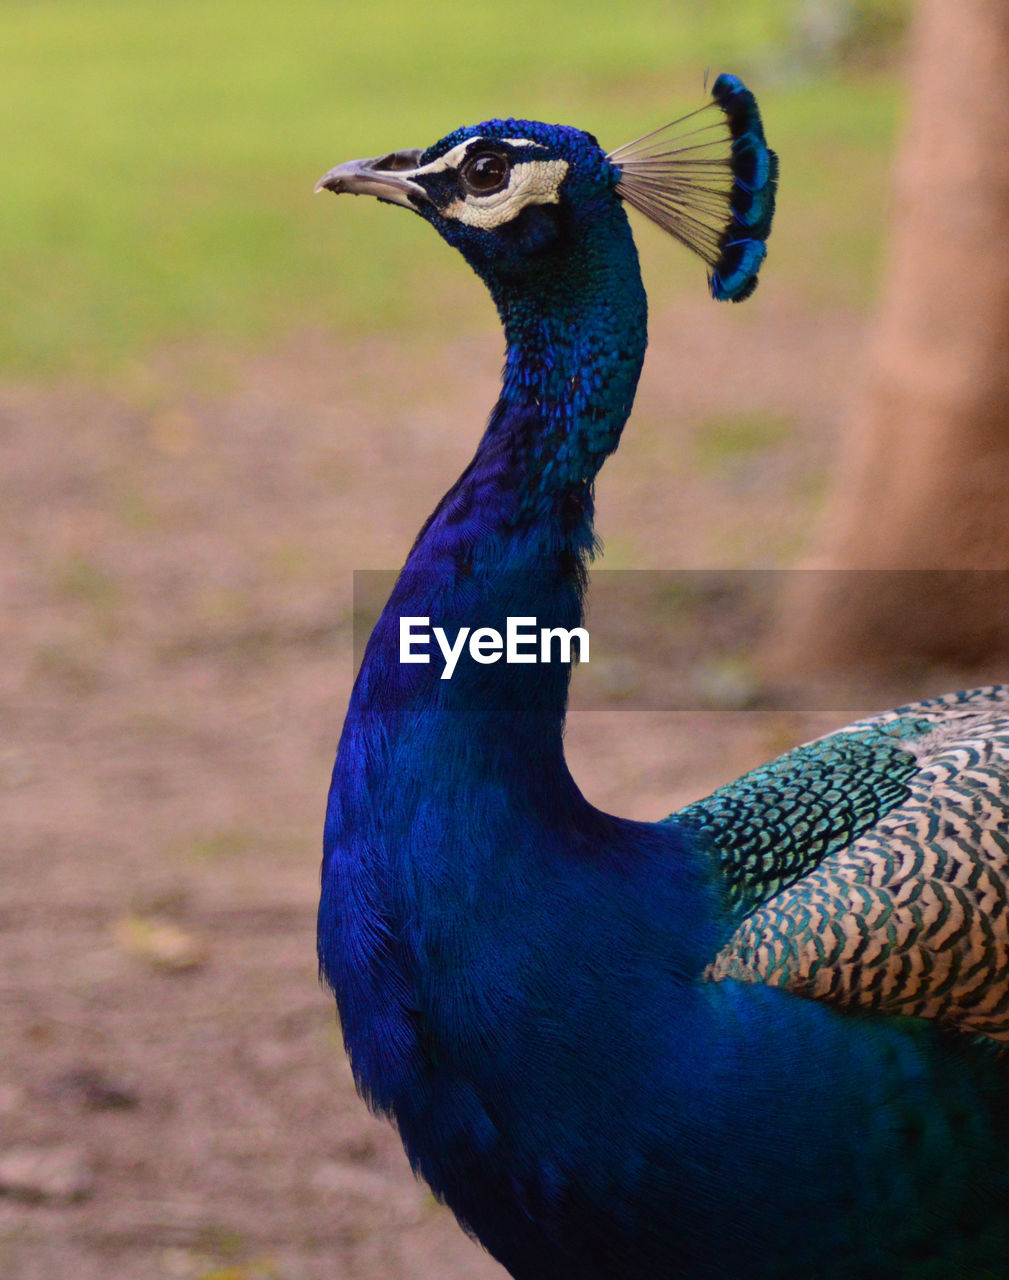 bird, animal themes, peacock, animal, vertebrate, animal wildlife, one animal, animals in the wild, focus on foreground, close-up, no people, day, nature, beauty in nature, field, outdoors, blue, animal's crest, land, animal body part, animal head, animal neck, profile view